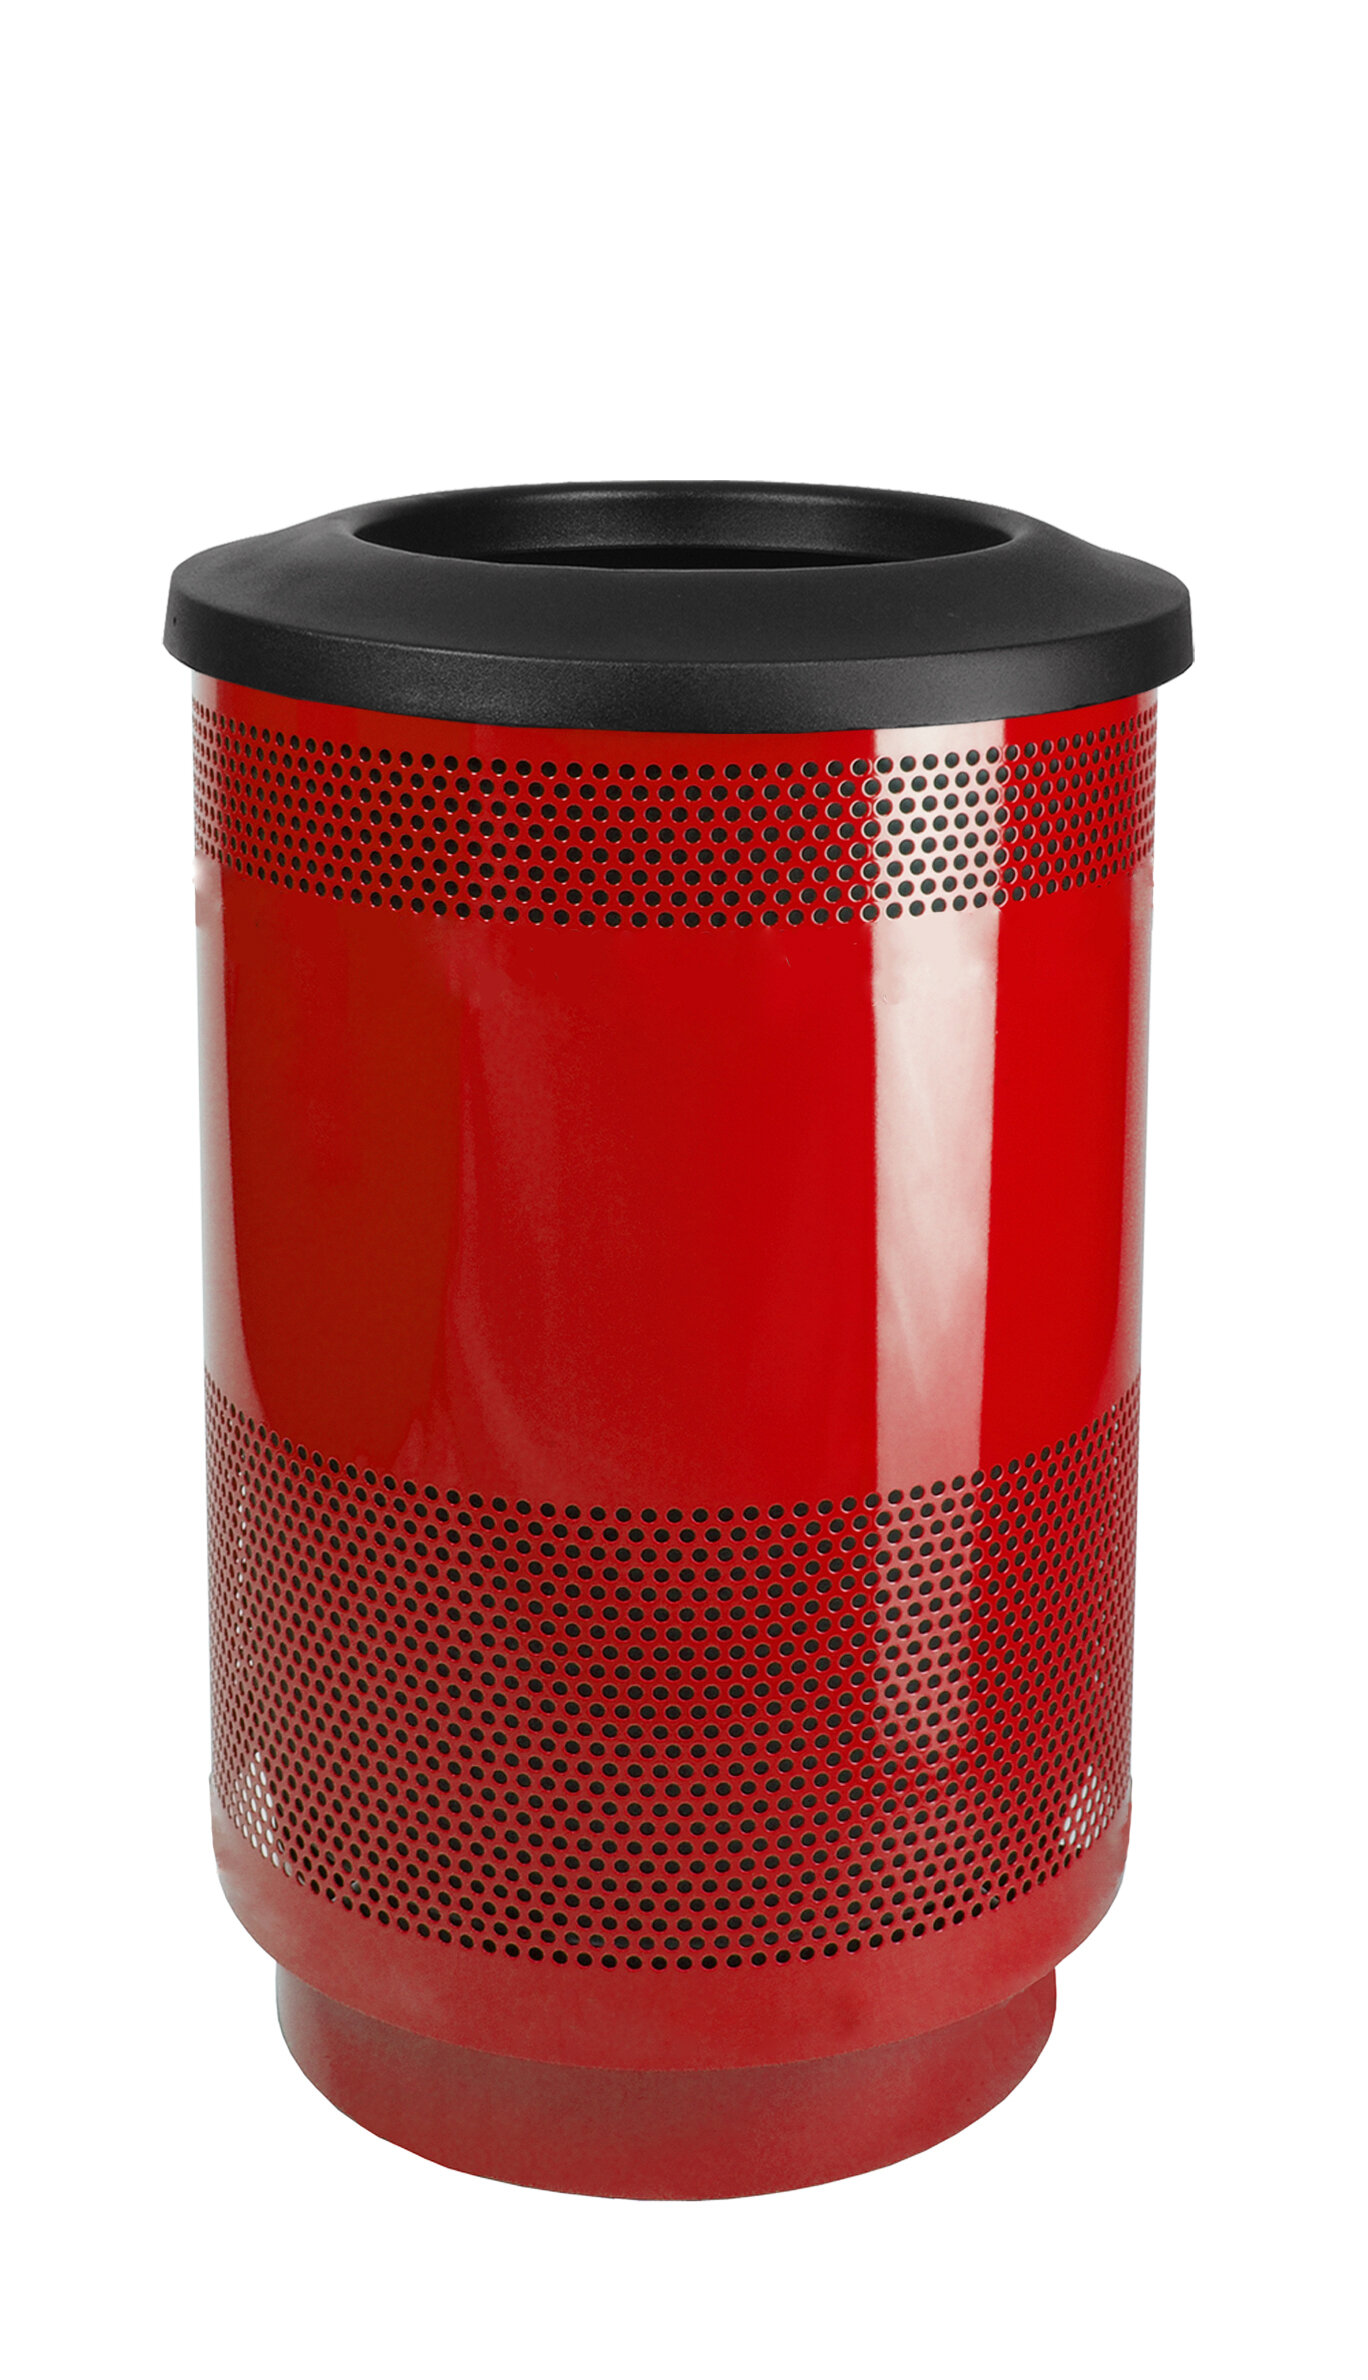 Witt Stadium Series Perforated Metal Receptacle 35 Gallon Trash Can Wayfair